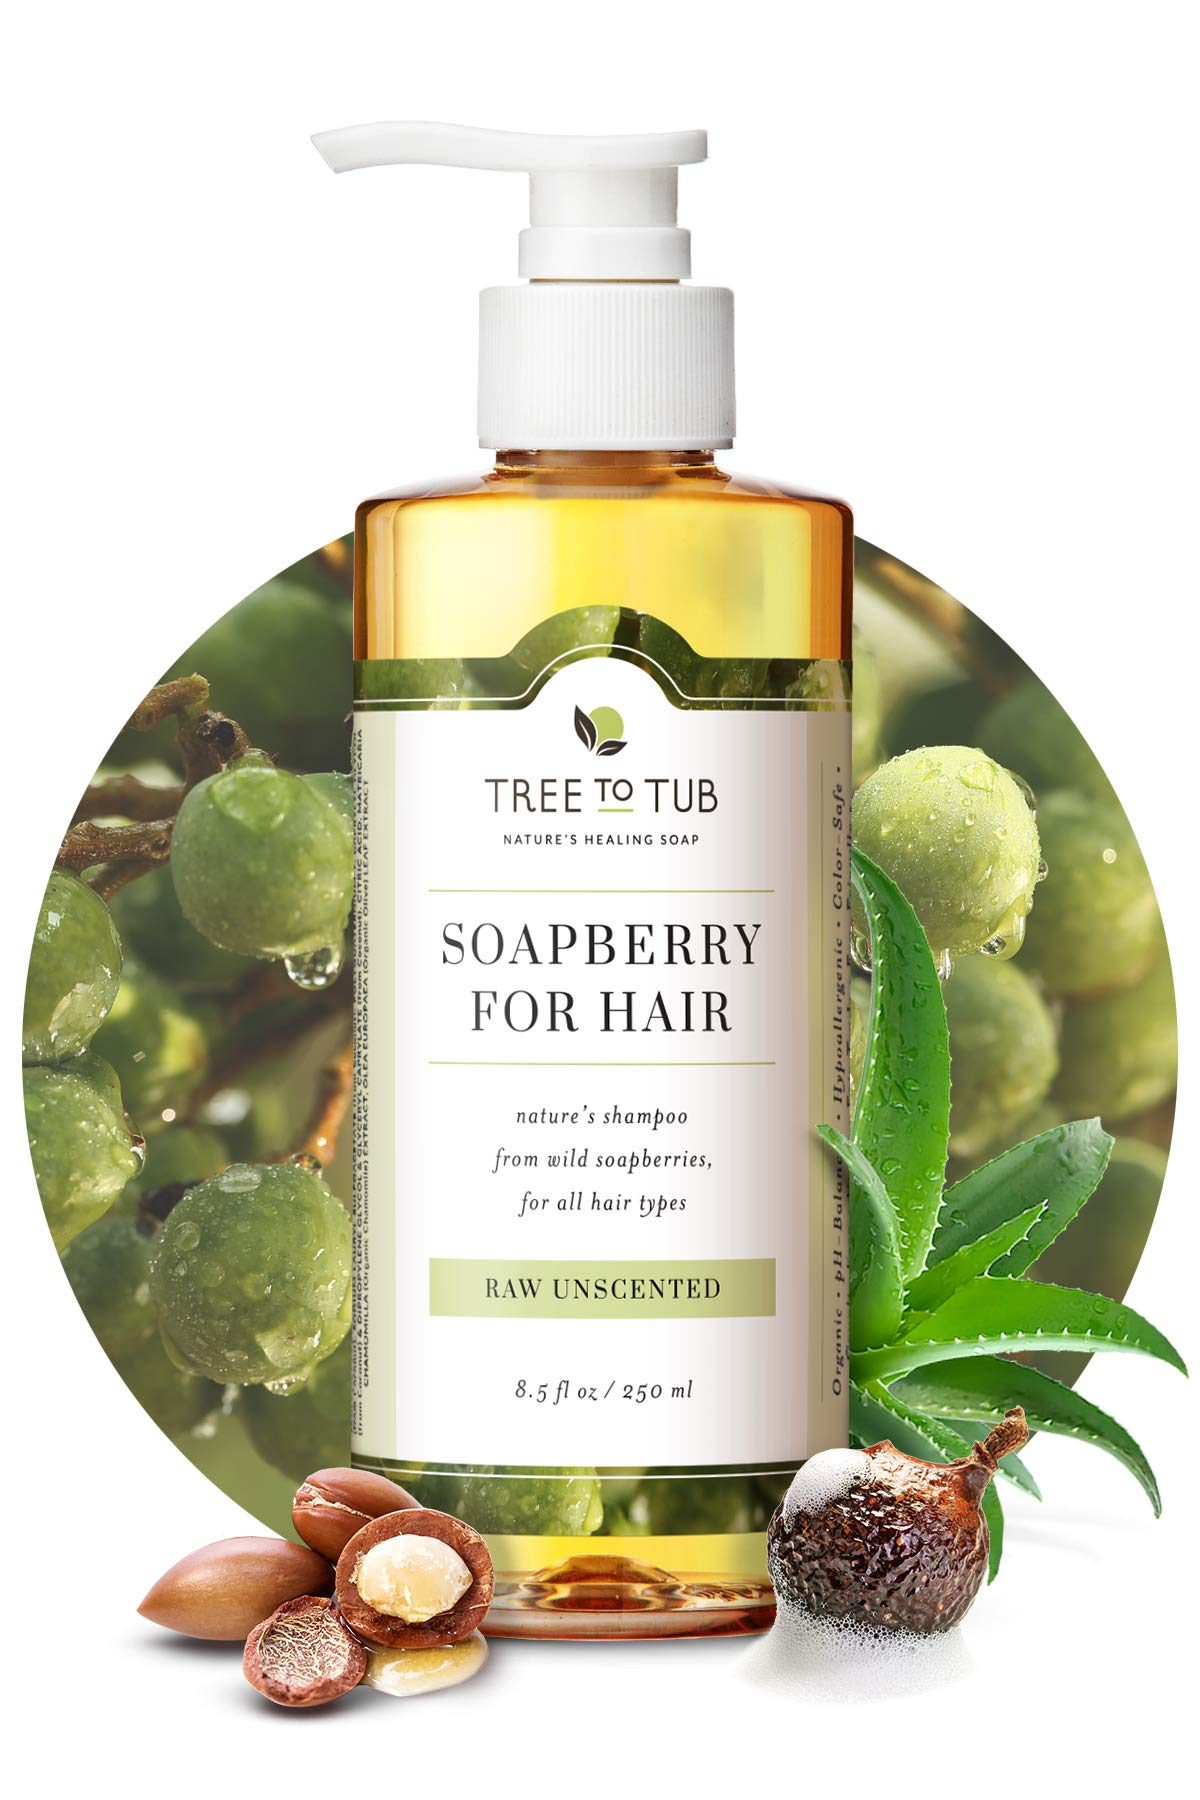 Fragrance Free Shampoo for Sensitive Skin by Tree To Tub - pH 5.5 Balanced Unscented Shampoo with Organic Moroccan Oil, Wild Soapberries 8.5 oz